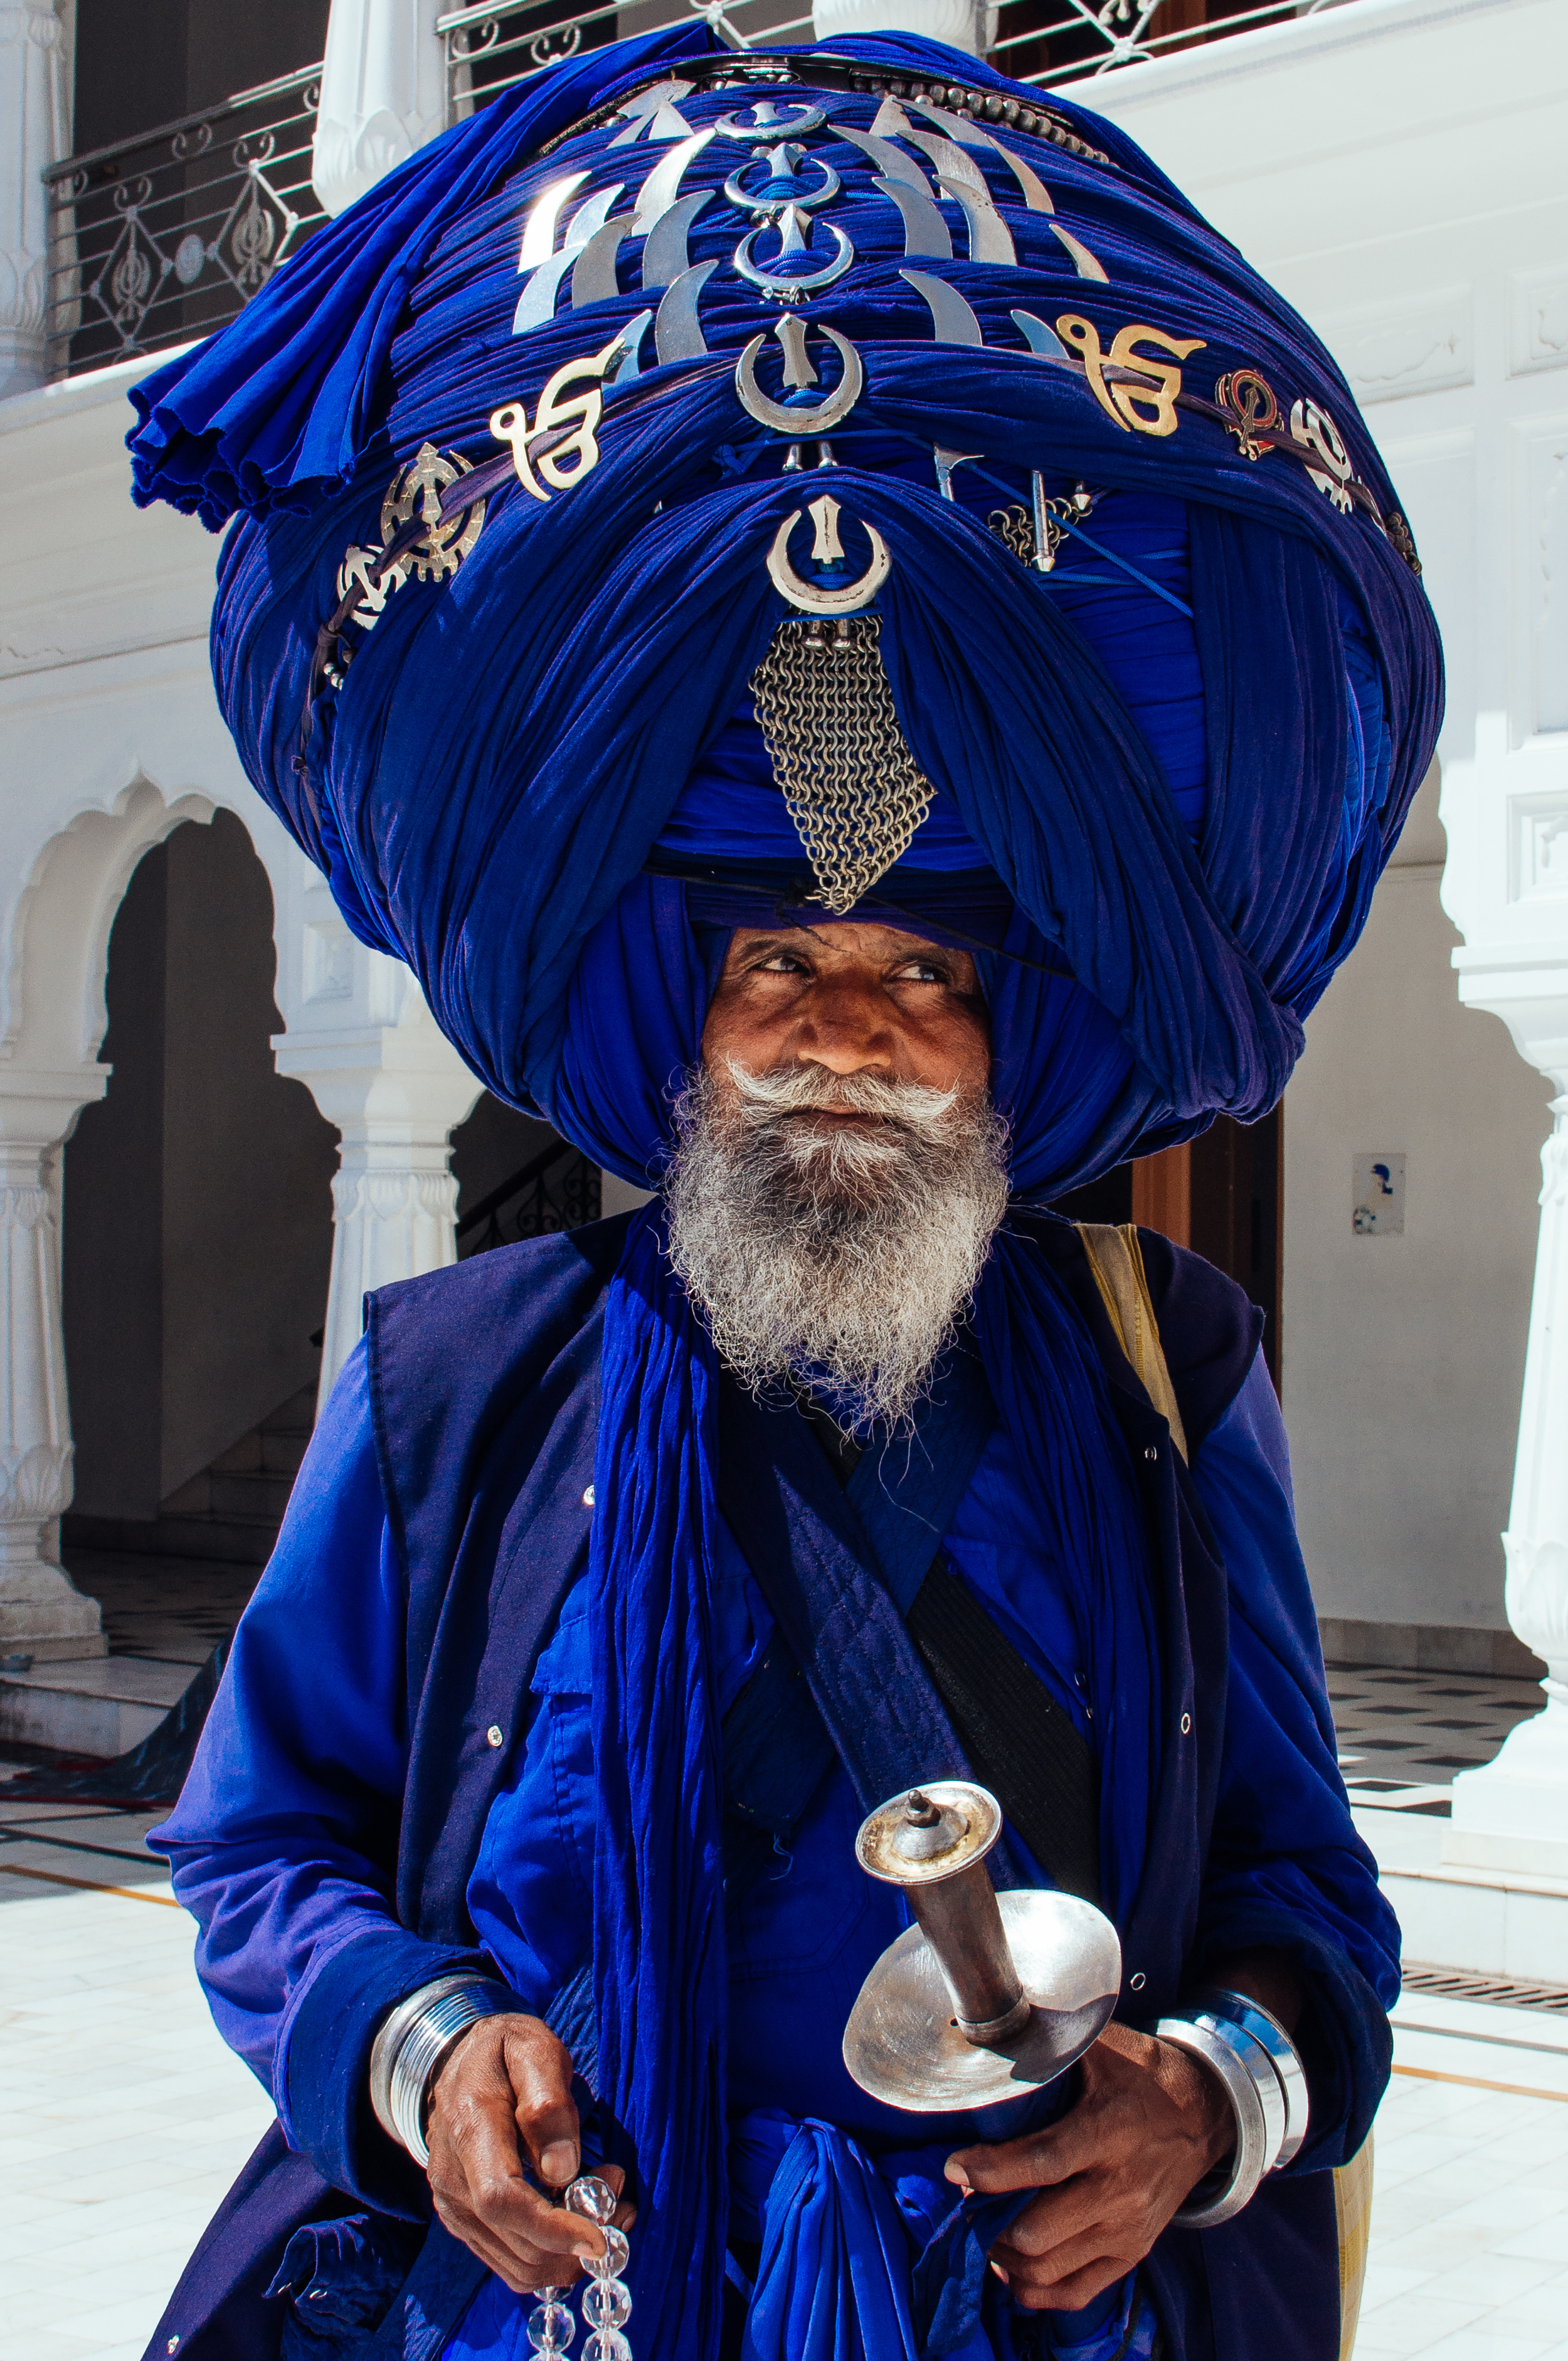 Variam and his beautifully decorated turban at the Golden Temple in Amritsar